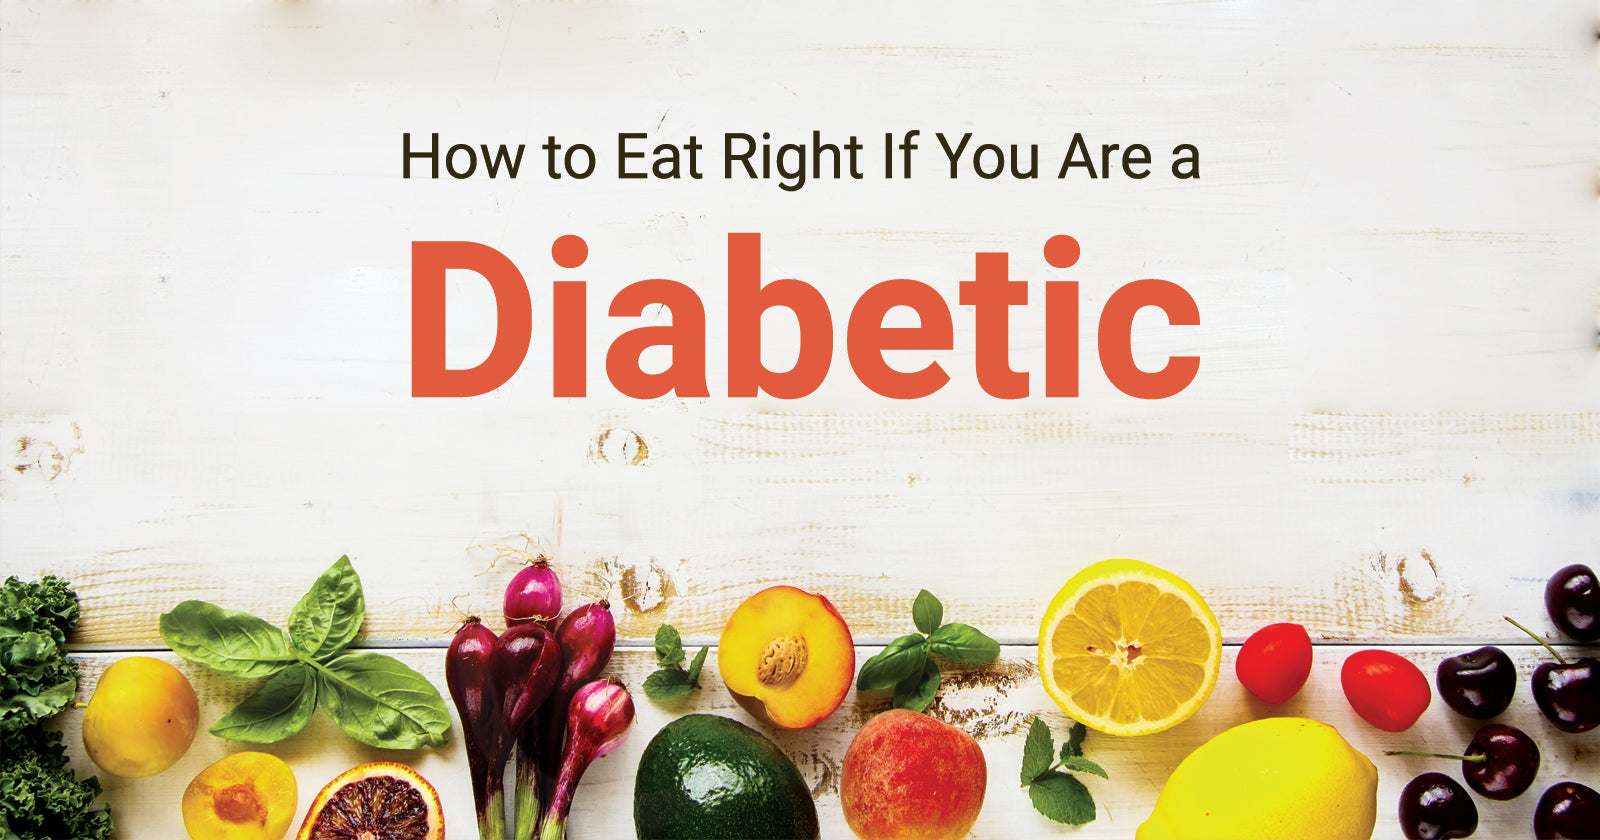 How to Eat Right If You Are a Diabetic